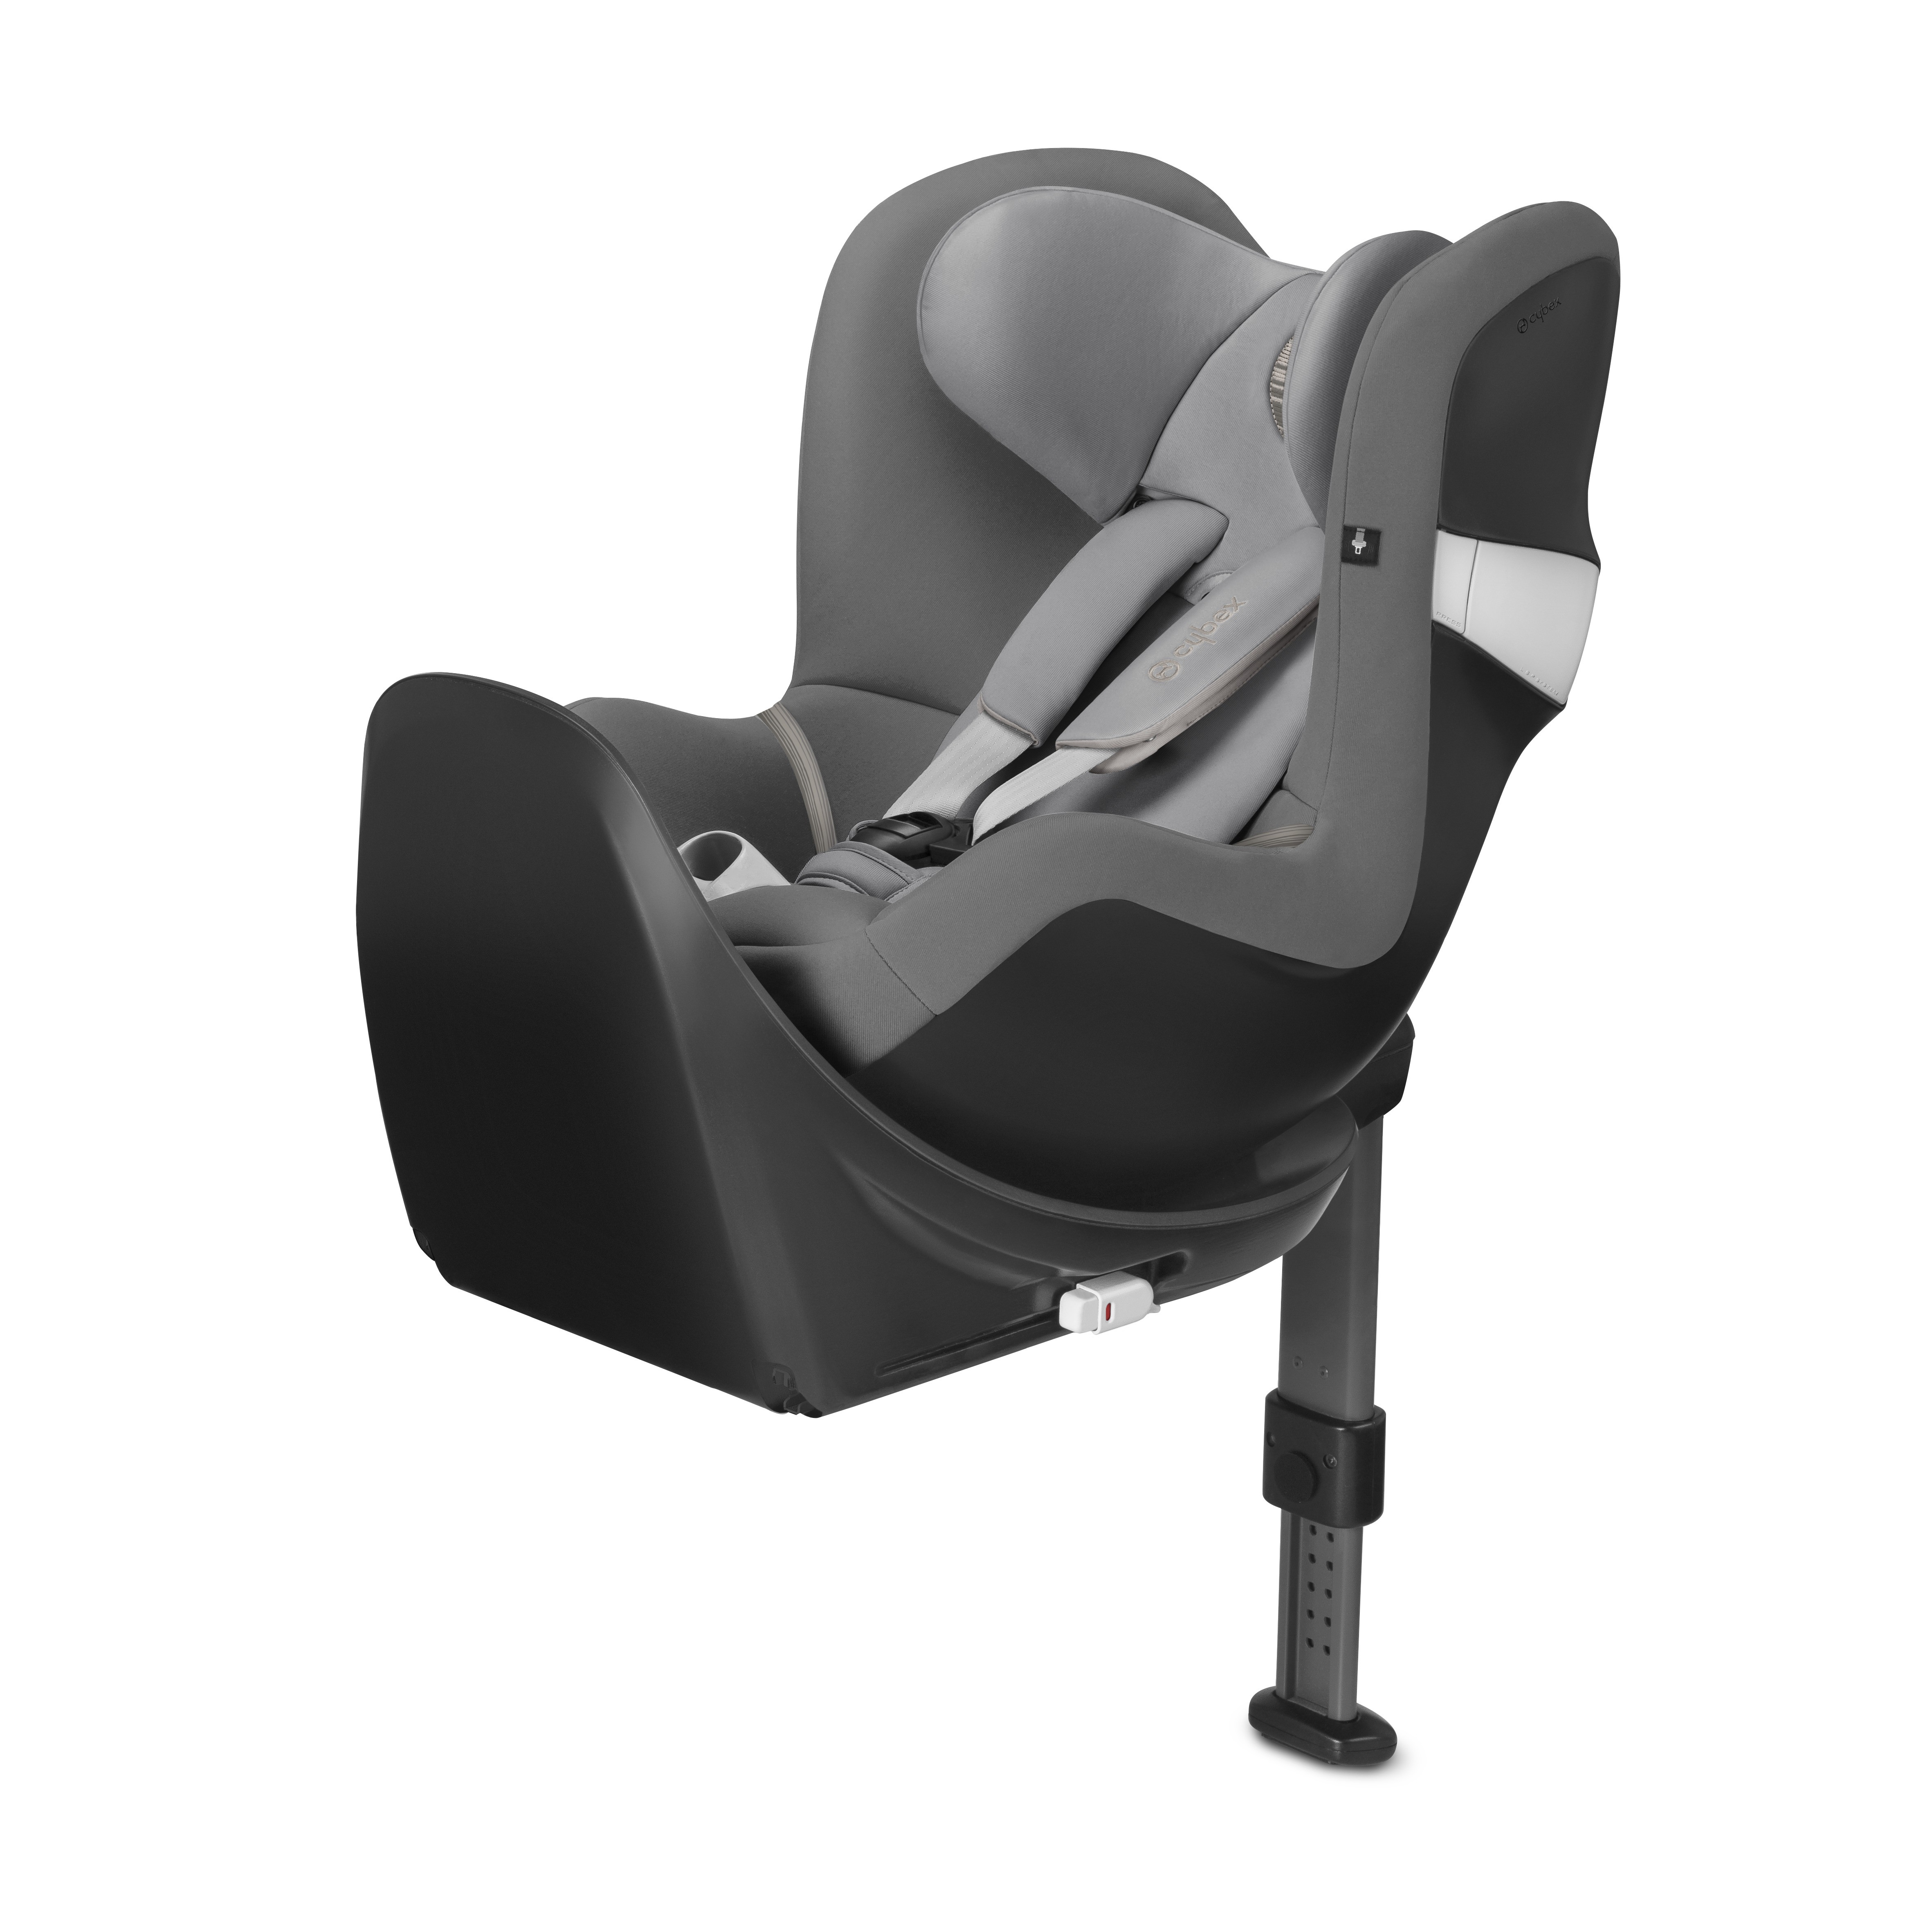 Автокресло Cybex Sirona M2 i-Size и база Base M Manhattan Grey, цвет серый